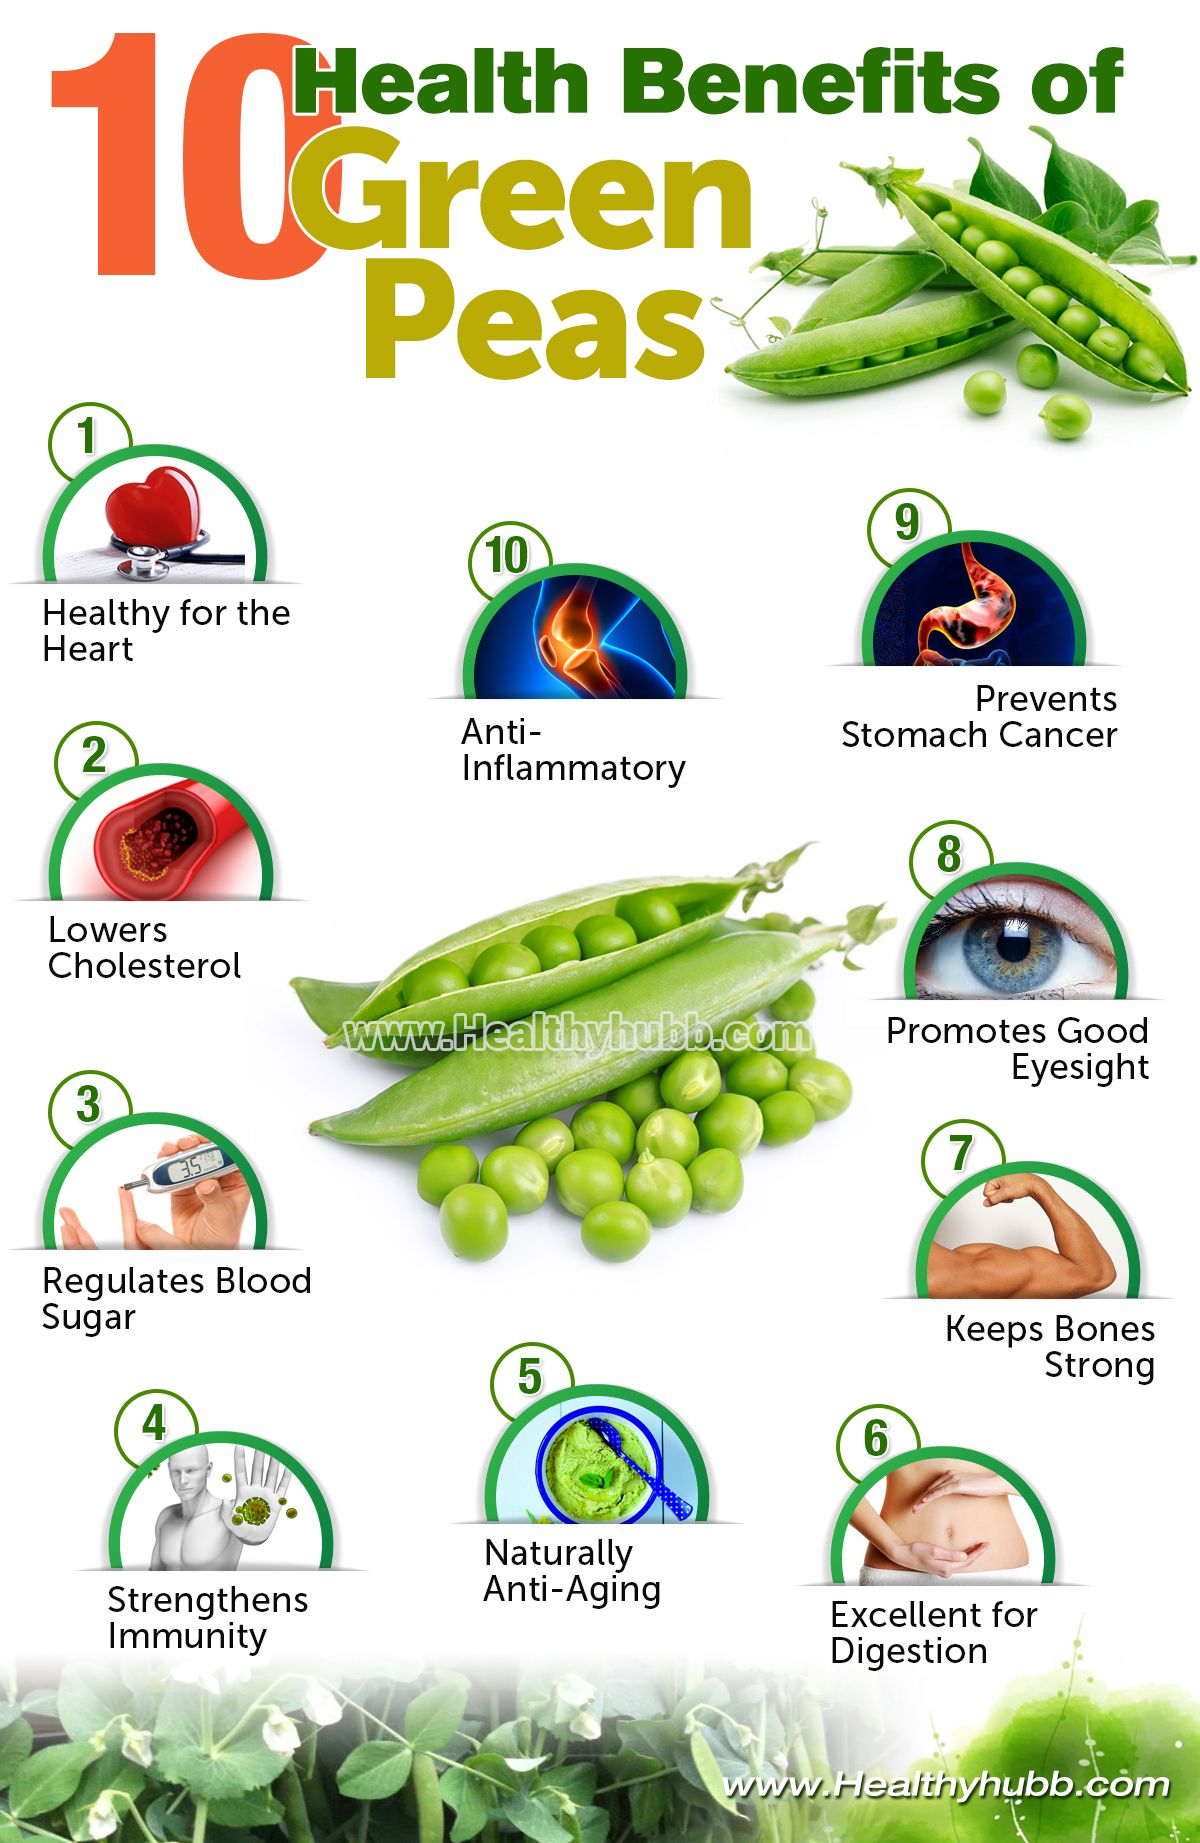 10 health benefits of green peas! | coconut health benefits